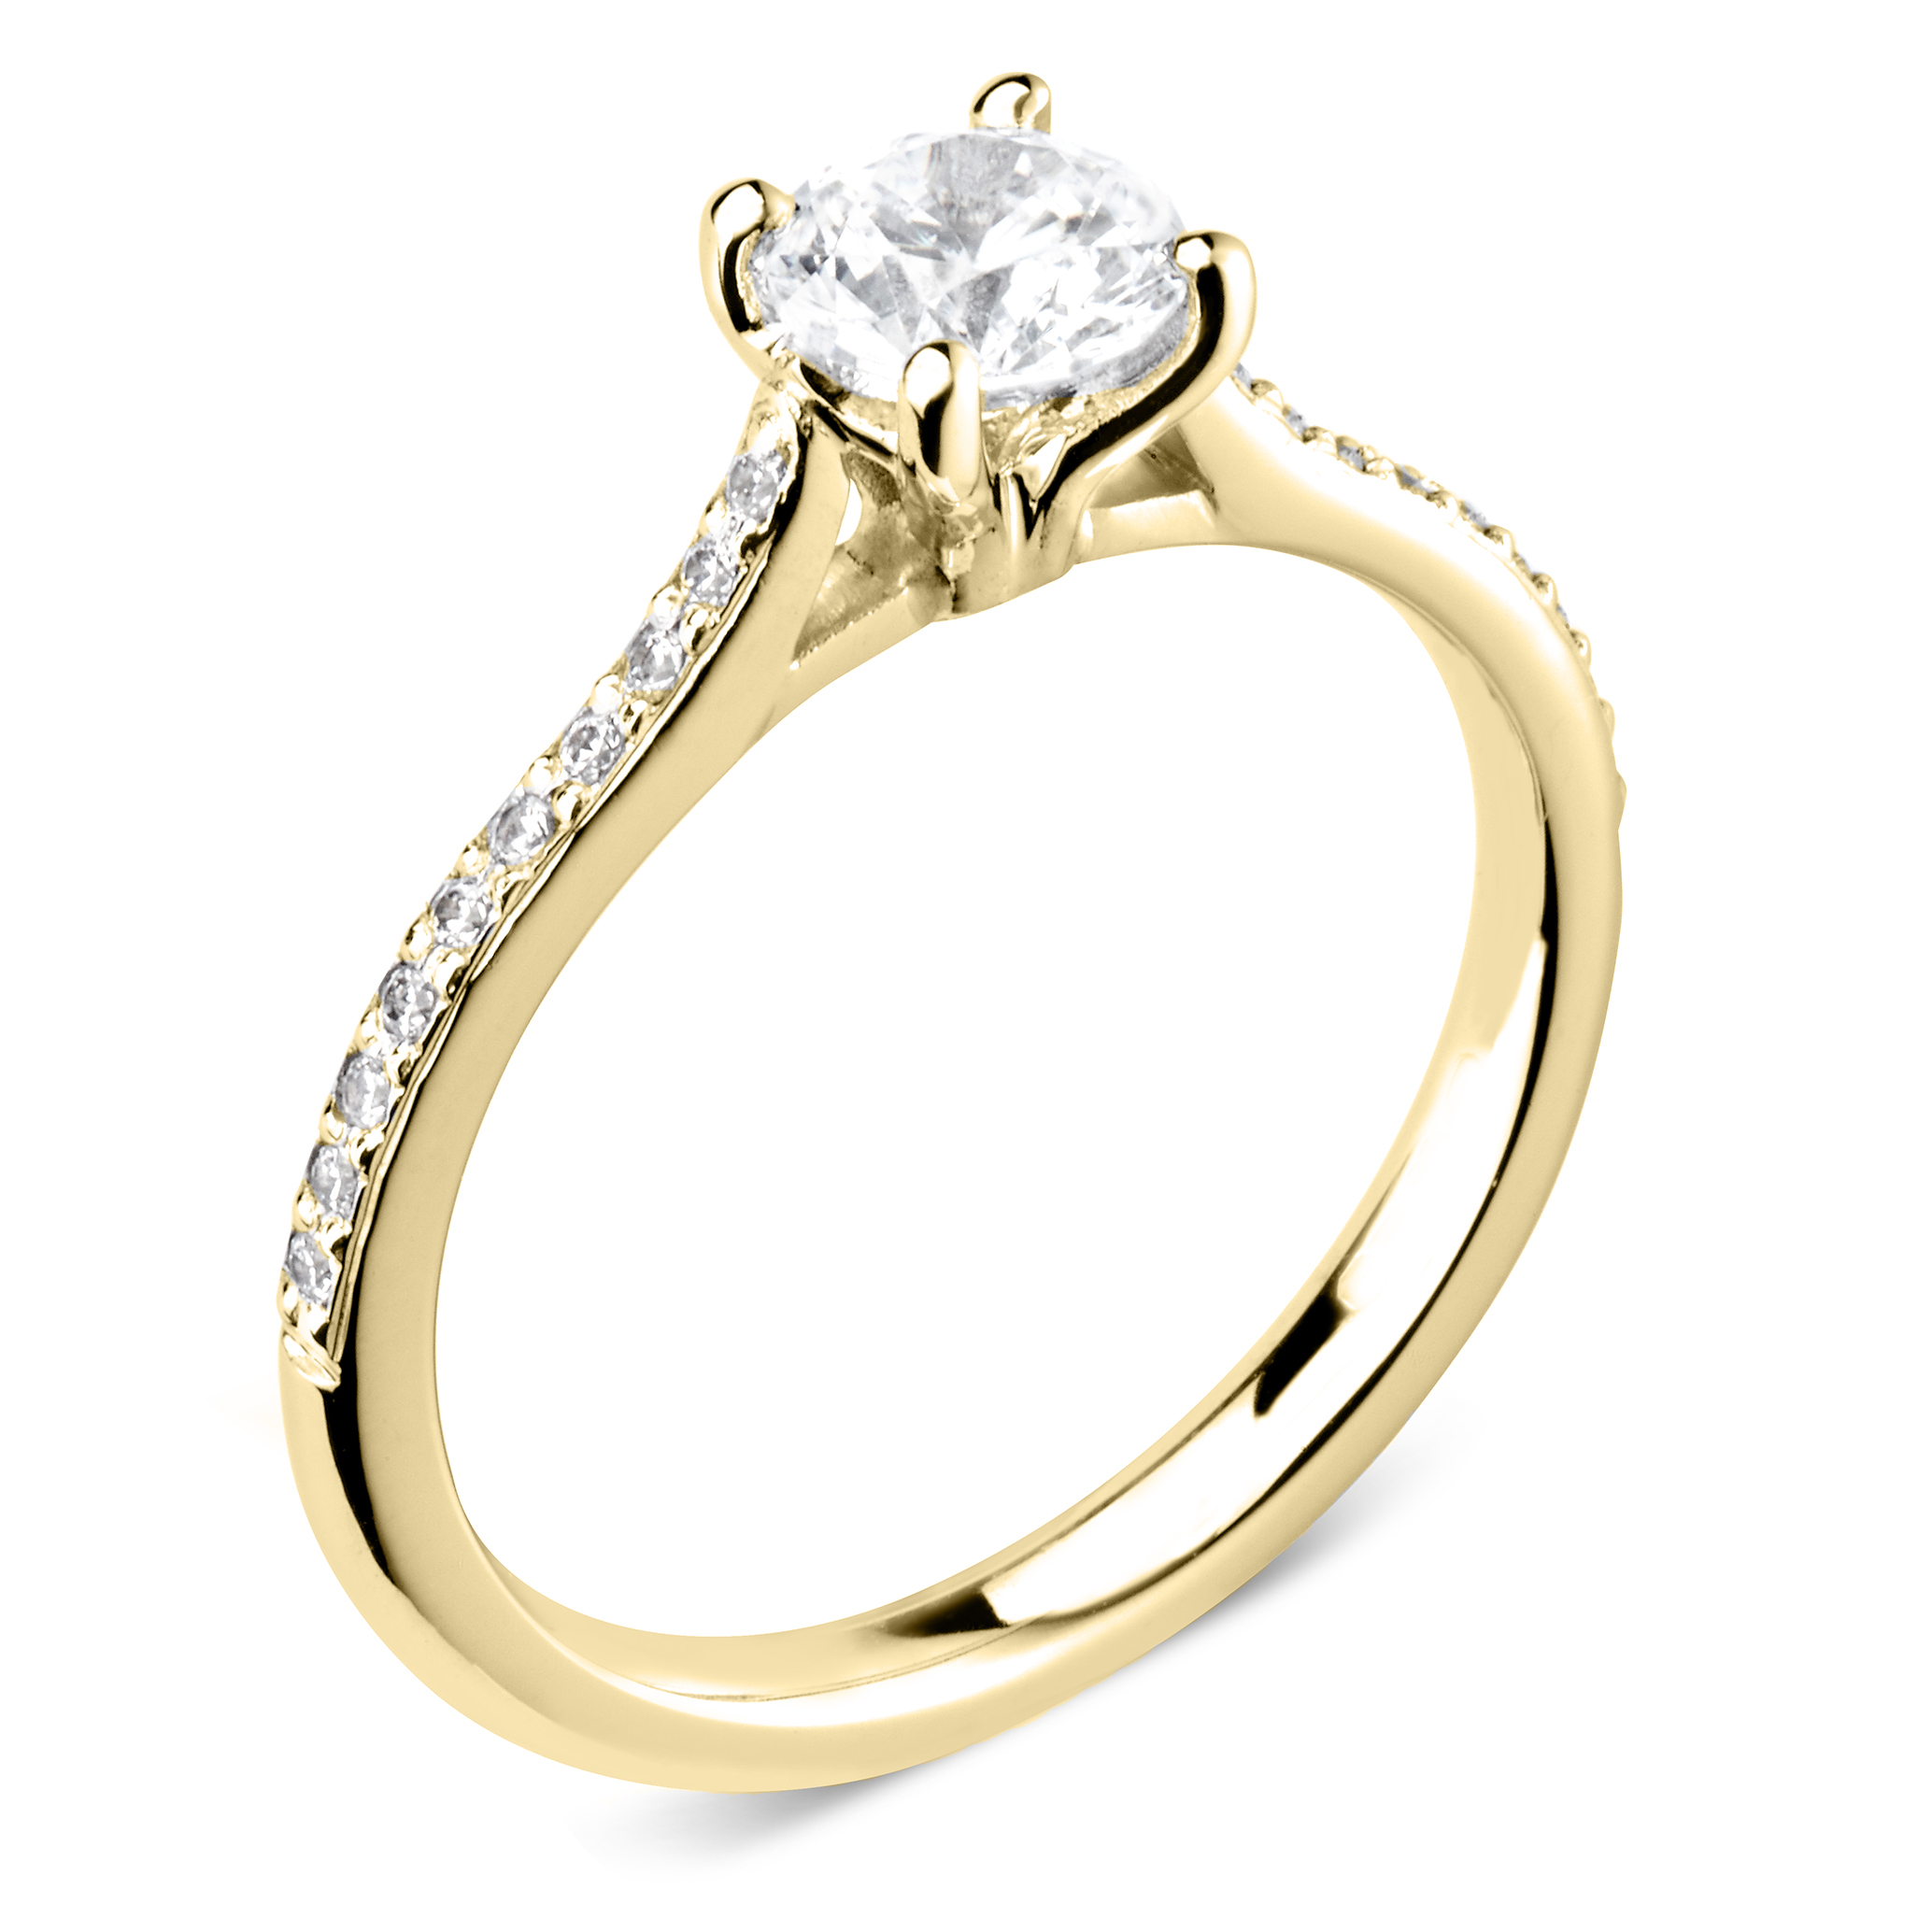 Trysor 18ct Yellow Gold Diamond Solitaire Engagement Ring